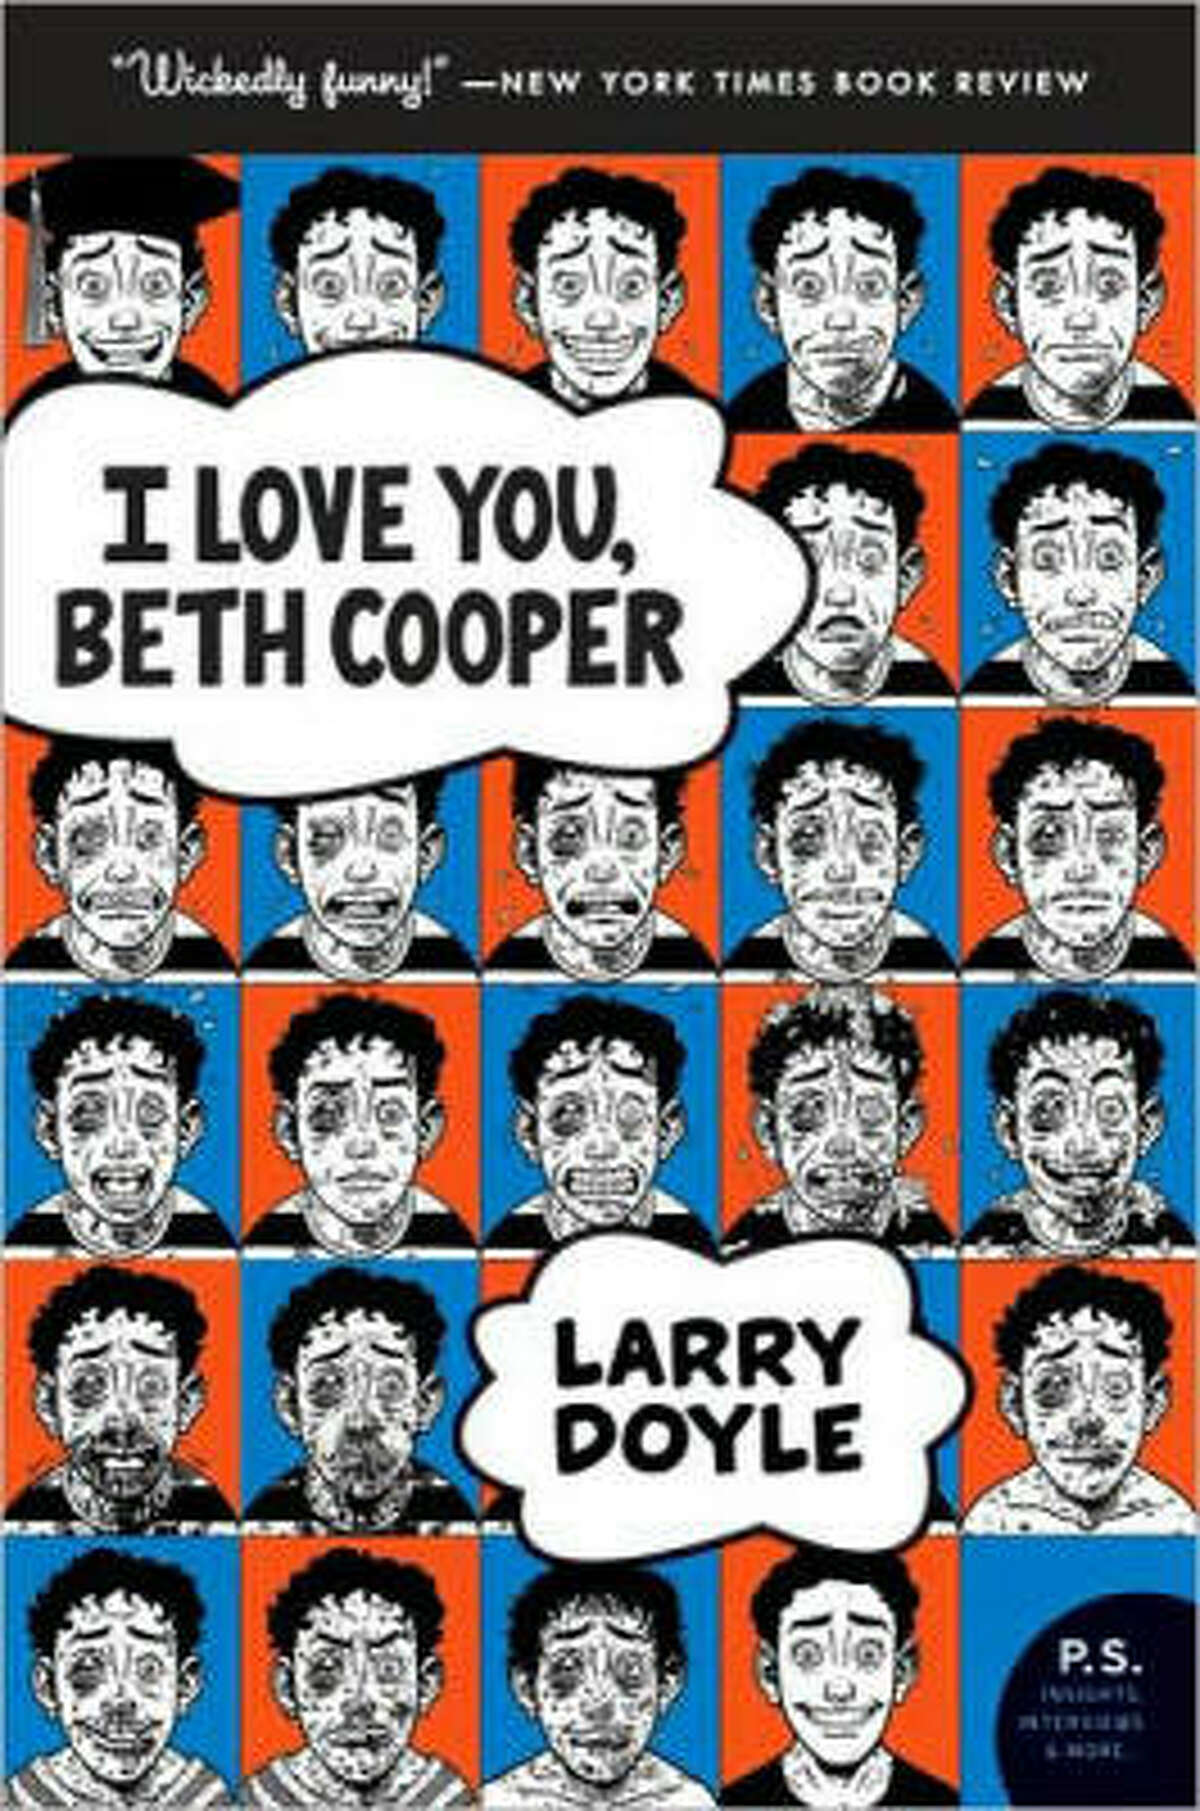 I Love You, Beth Cooper (opening Friday) is the latest in a line of sleep-deprived movies that stay up late in search of laughs, love and life lessons.